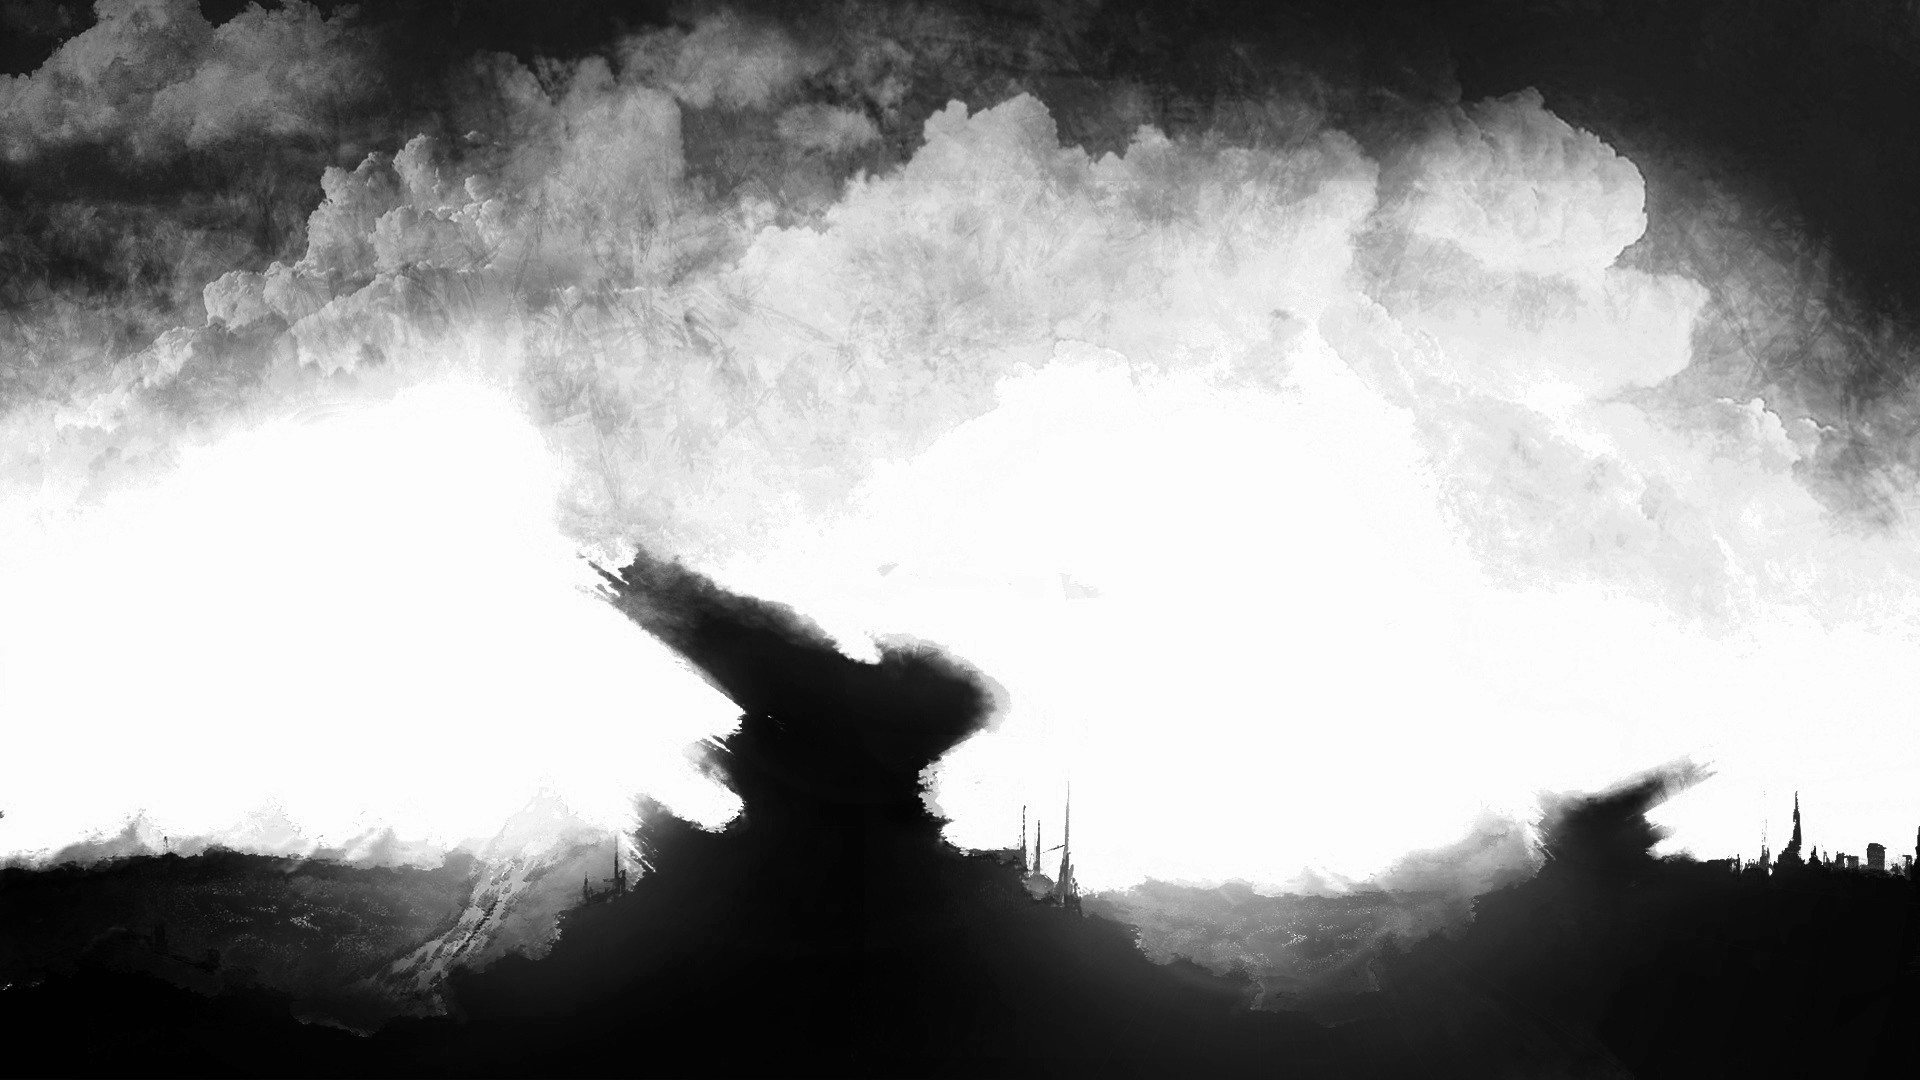 Res: 1920x1080, dark, Surreal, Black, White, Sky, Clouds Wallpapers HD / Desktop and Mobile  Backgrounds